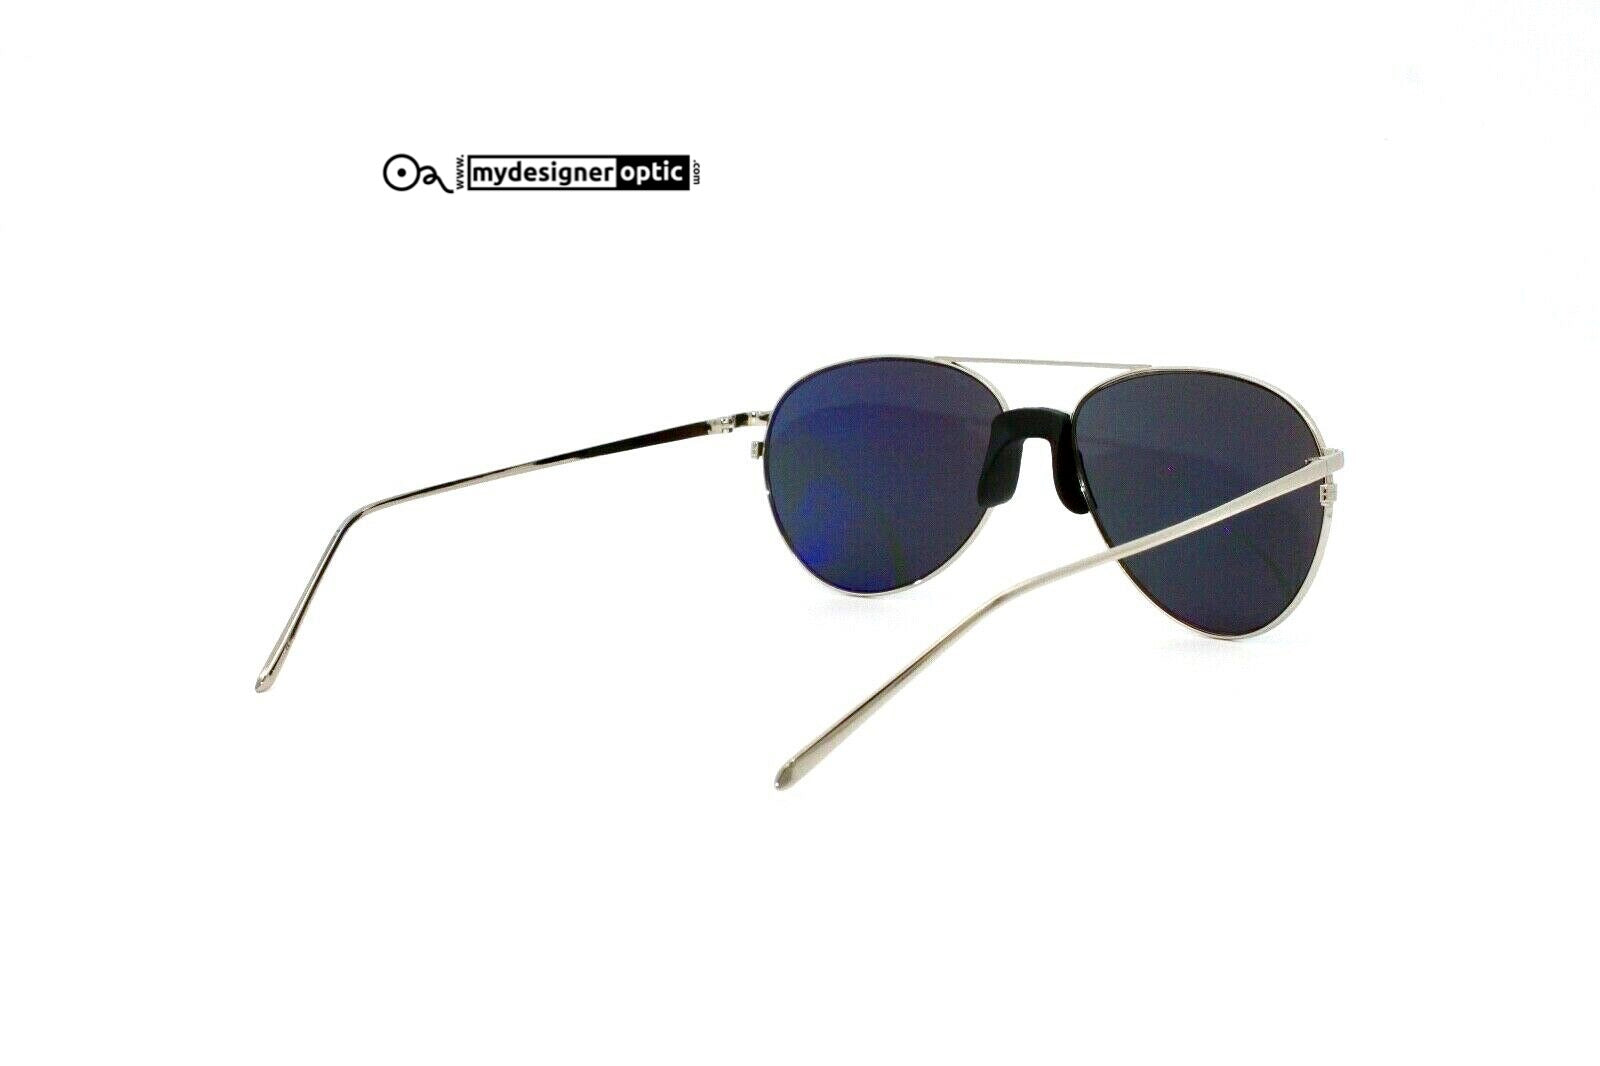 Linda Farrow Sunglasses LFL/344/3 59-16-143 Made in Japan - Mydesigneroptic